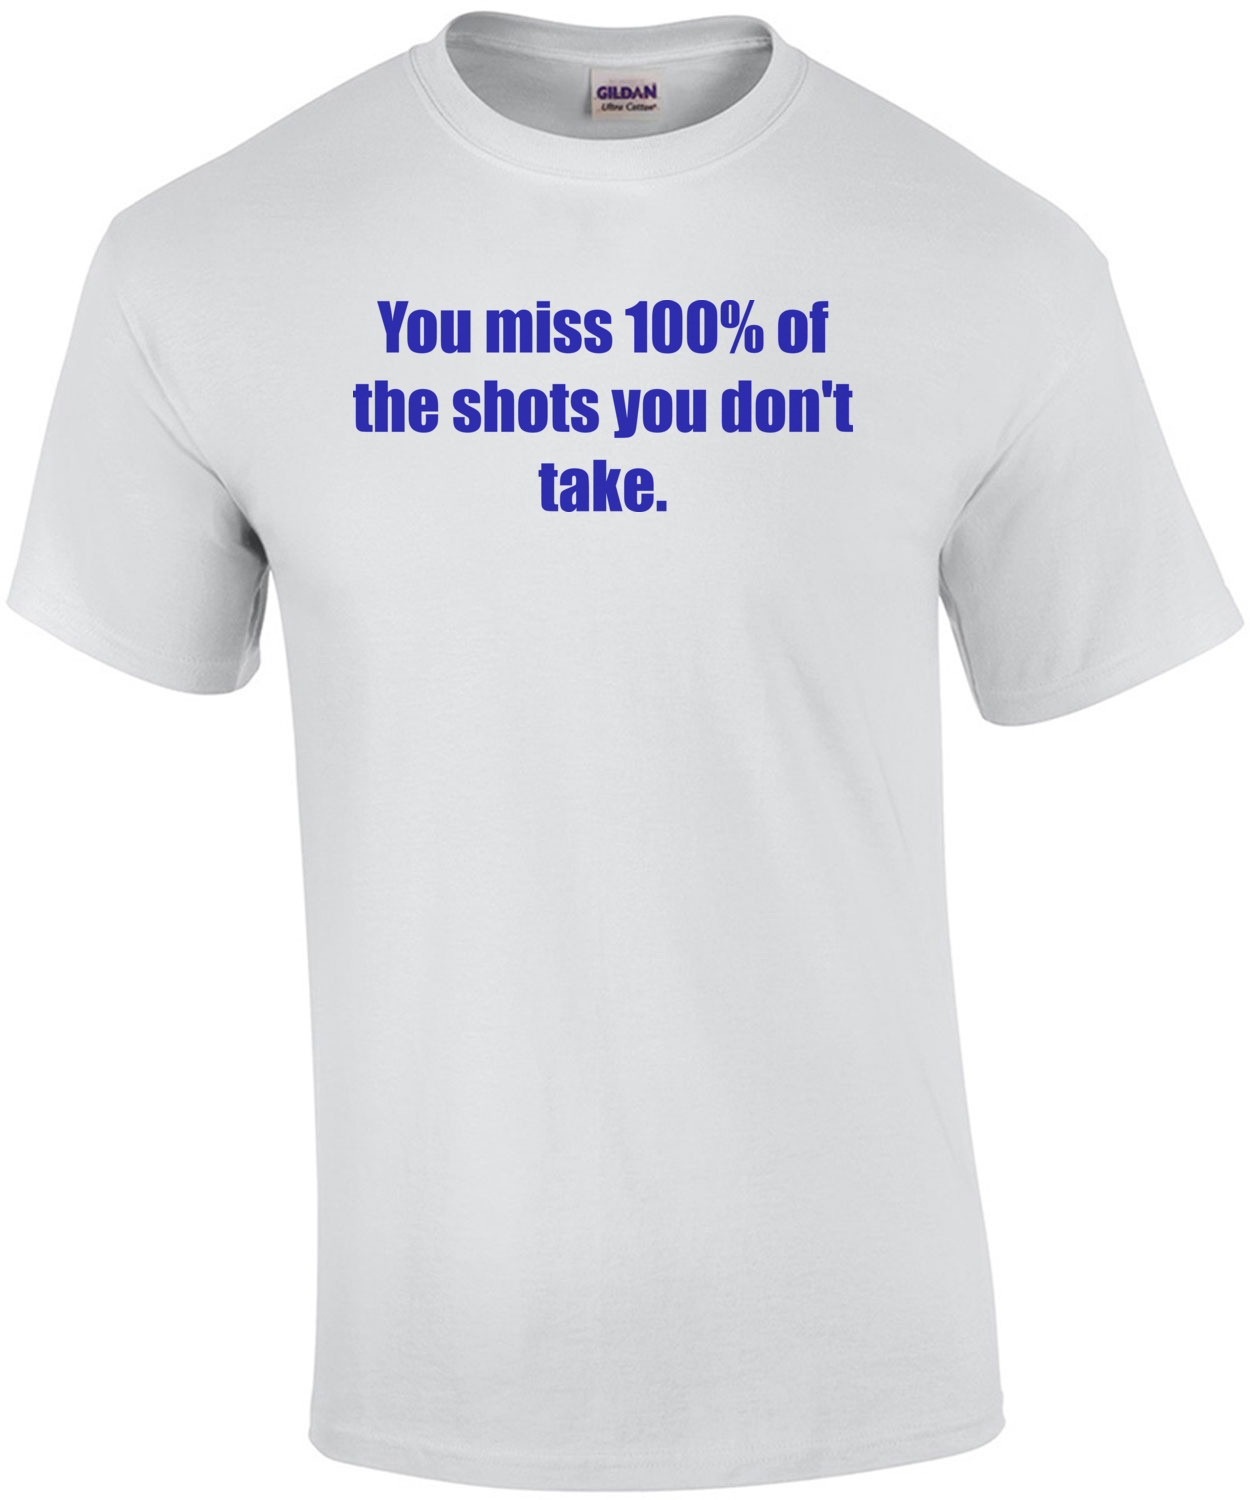 You miss 100% of the shots you don't take. Shirt